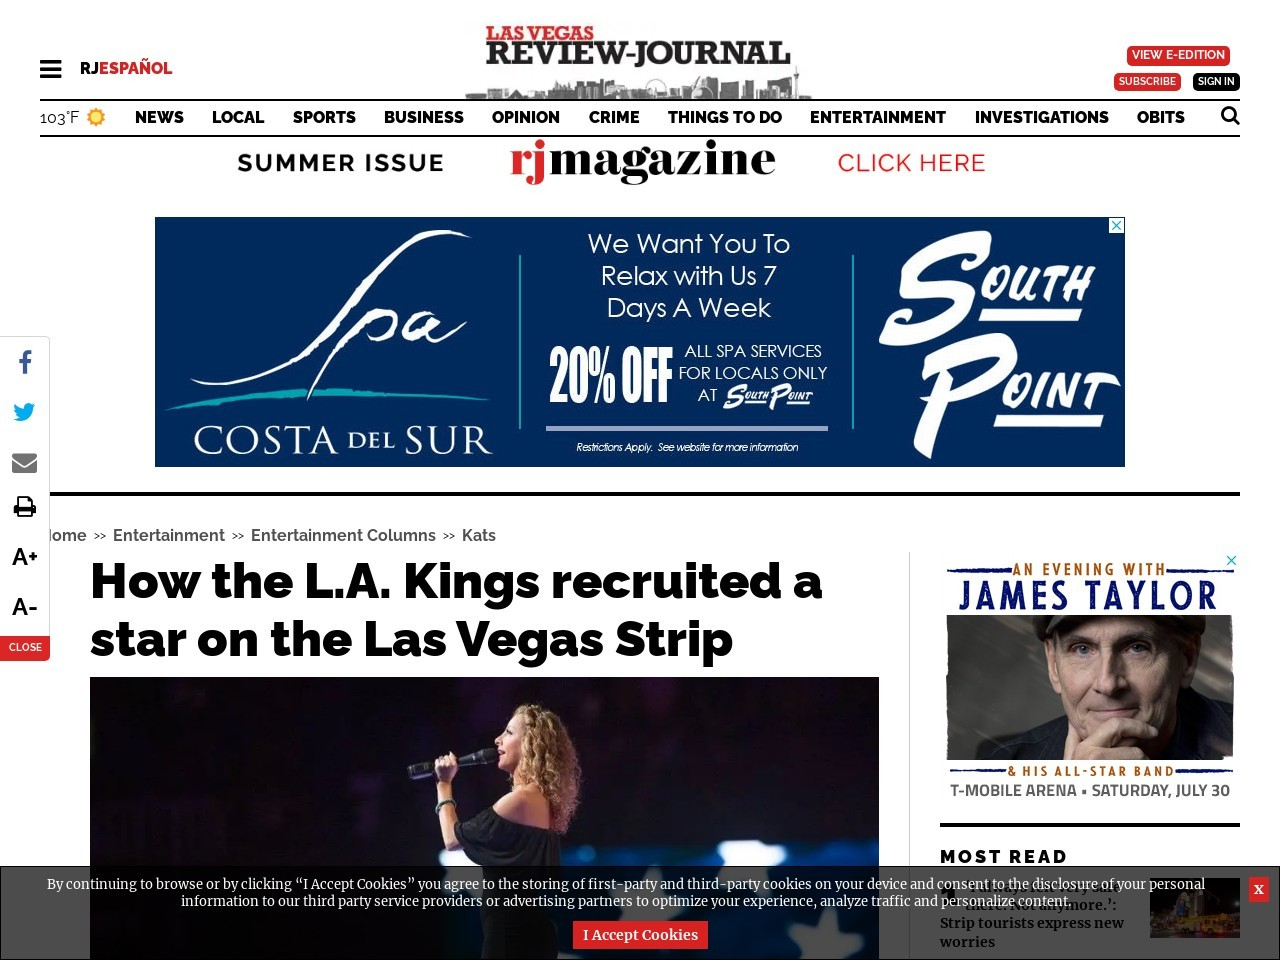 How the L.A. Kings recruited a star on the Las Vegas Strip